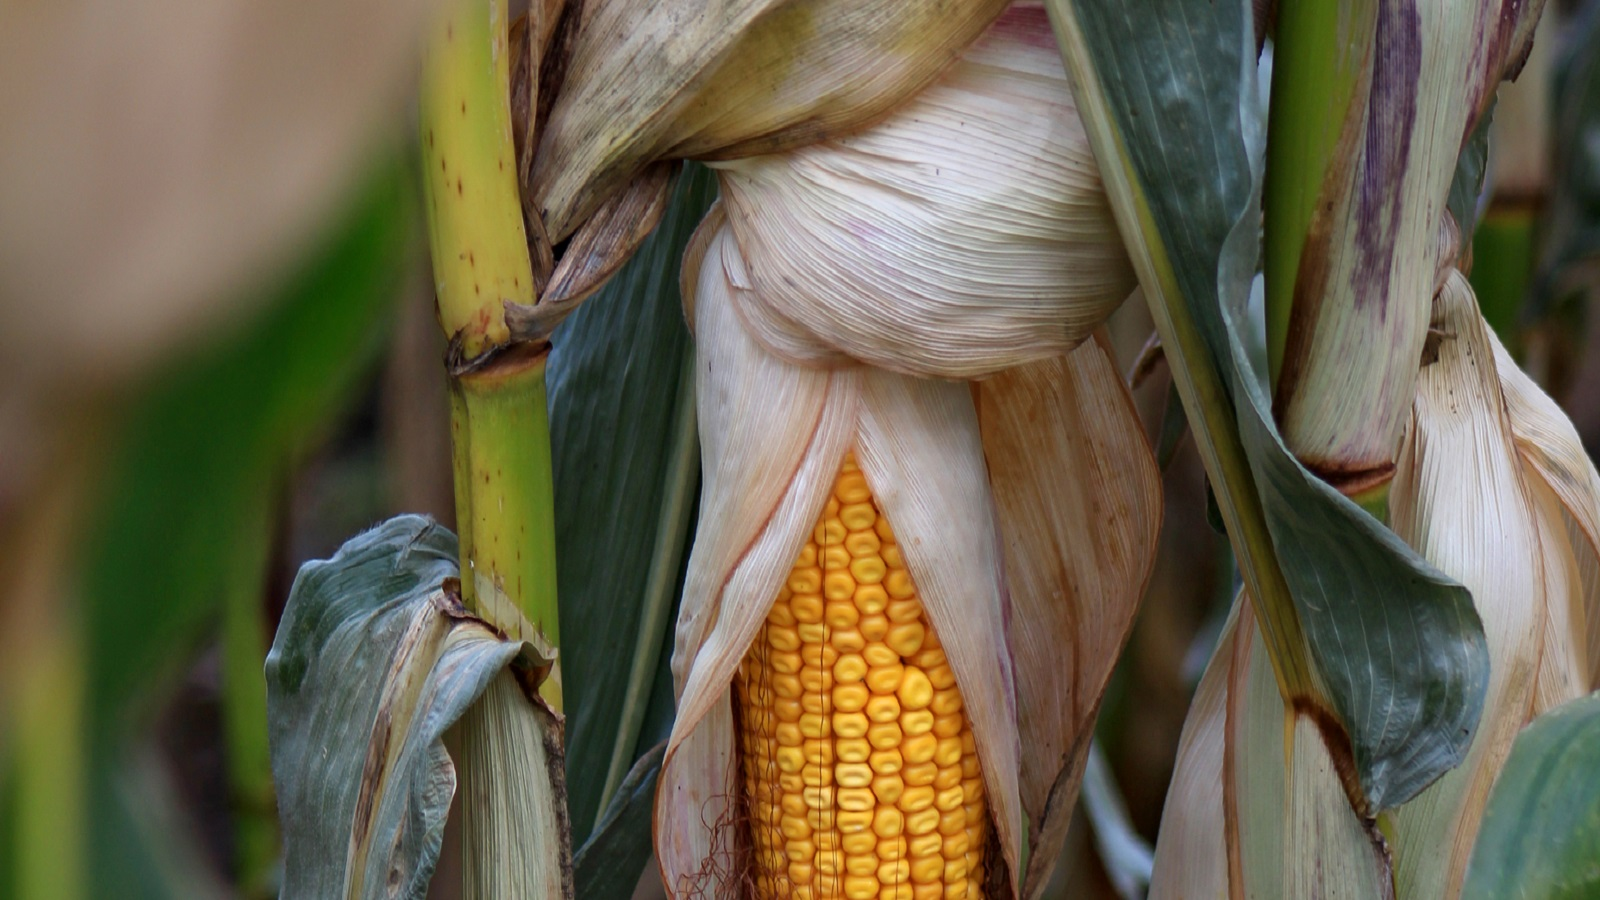 Argonne recently teamed up with a Colorado-based biofuel company to perform a critical lifecycle analysis of its next gen technology to produce renewable jet fuel from corn grain in what could be a game-changer in biofuel industry. (Gevo.)